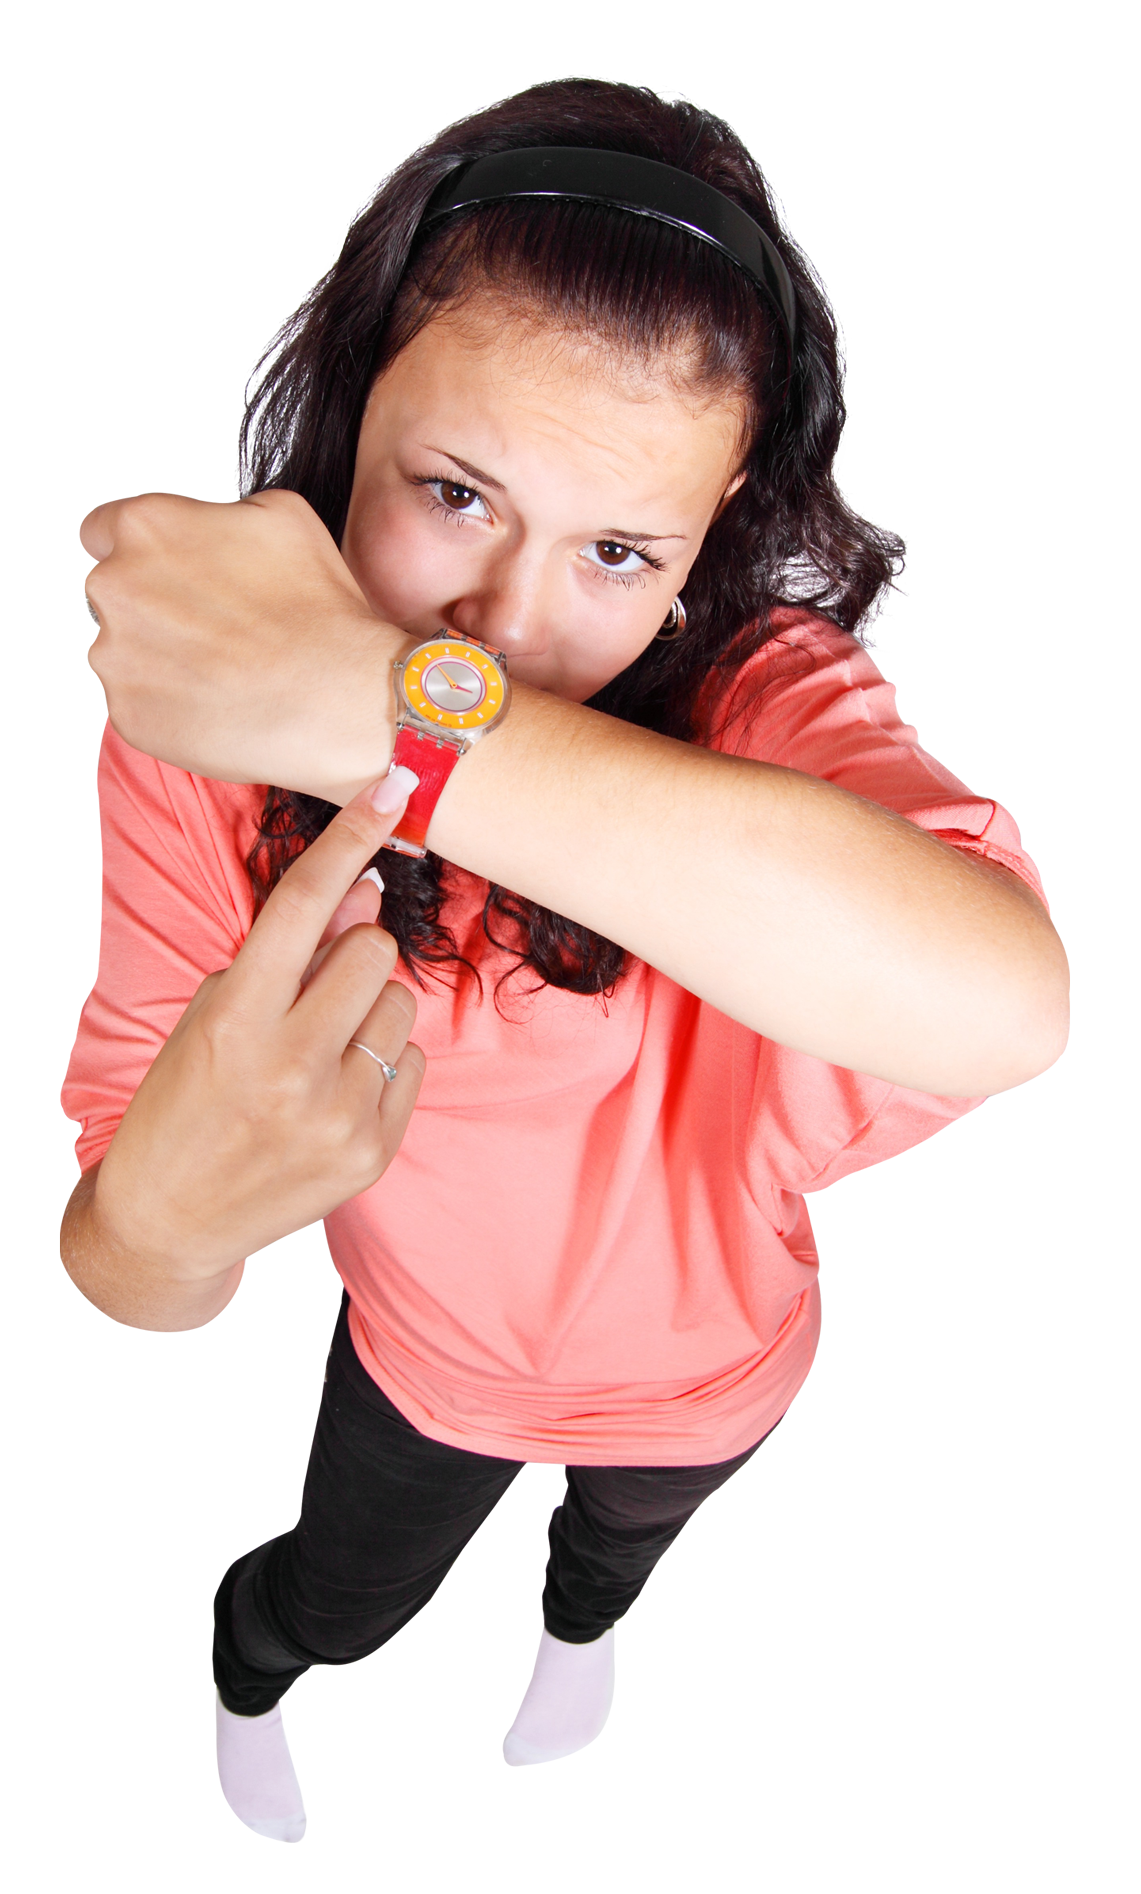 Young Girl Pointing Finger At Her Watch PNG Image